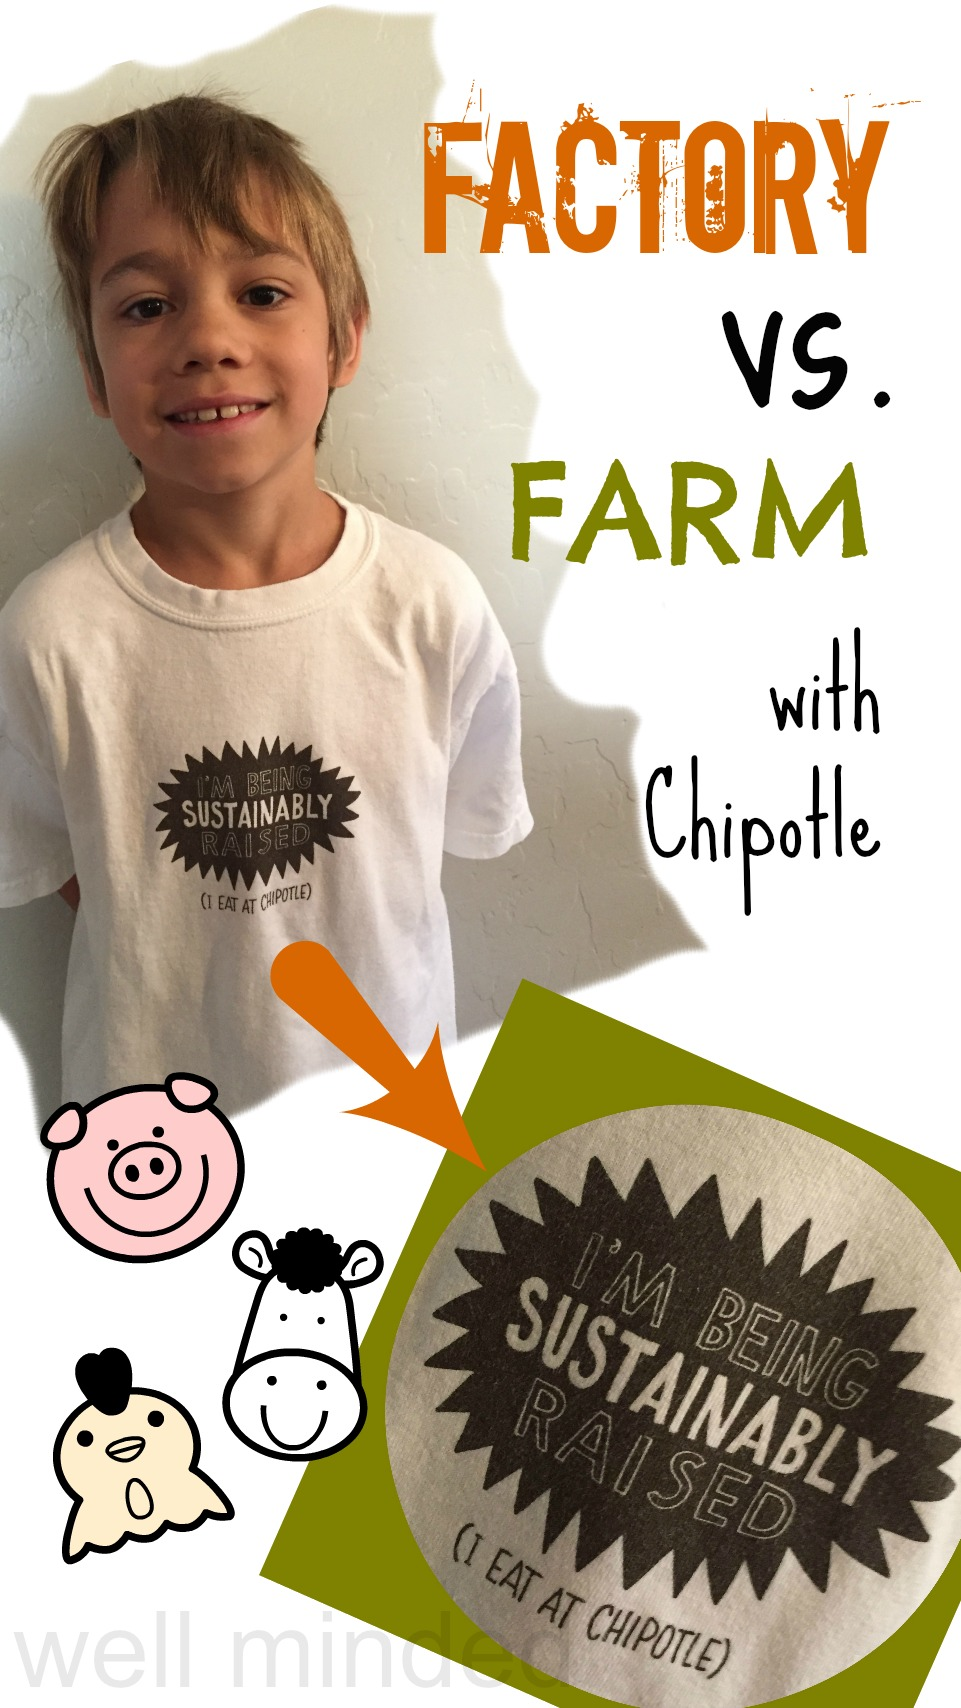 Factory vs. Farm with Chipotle. We believe in being sustainably raised!